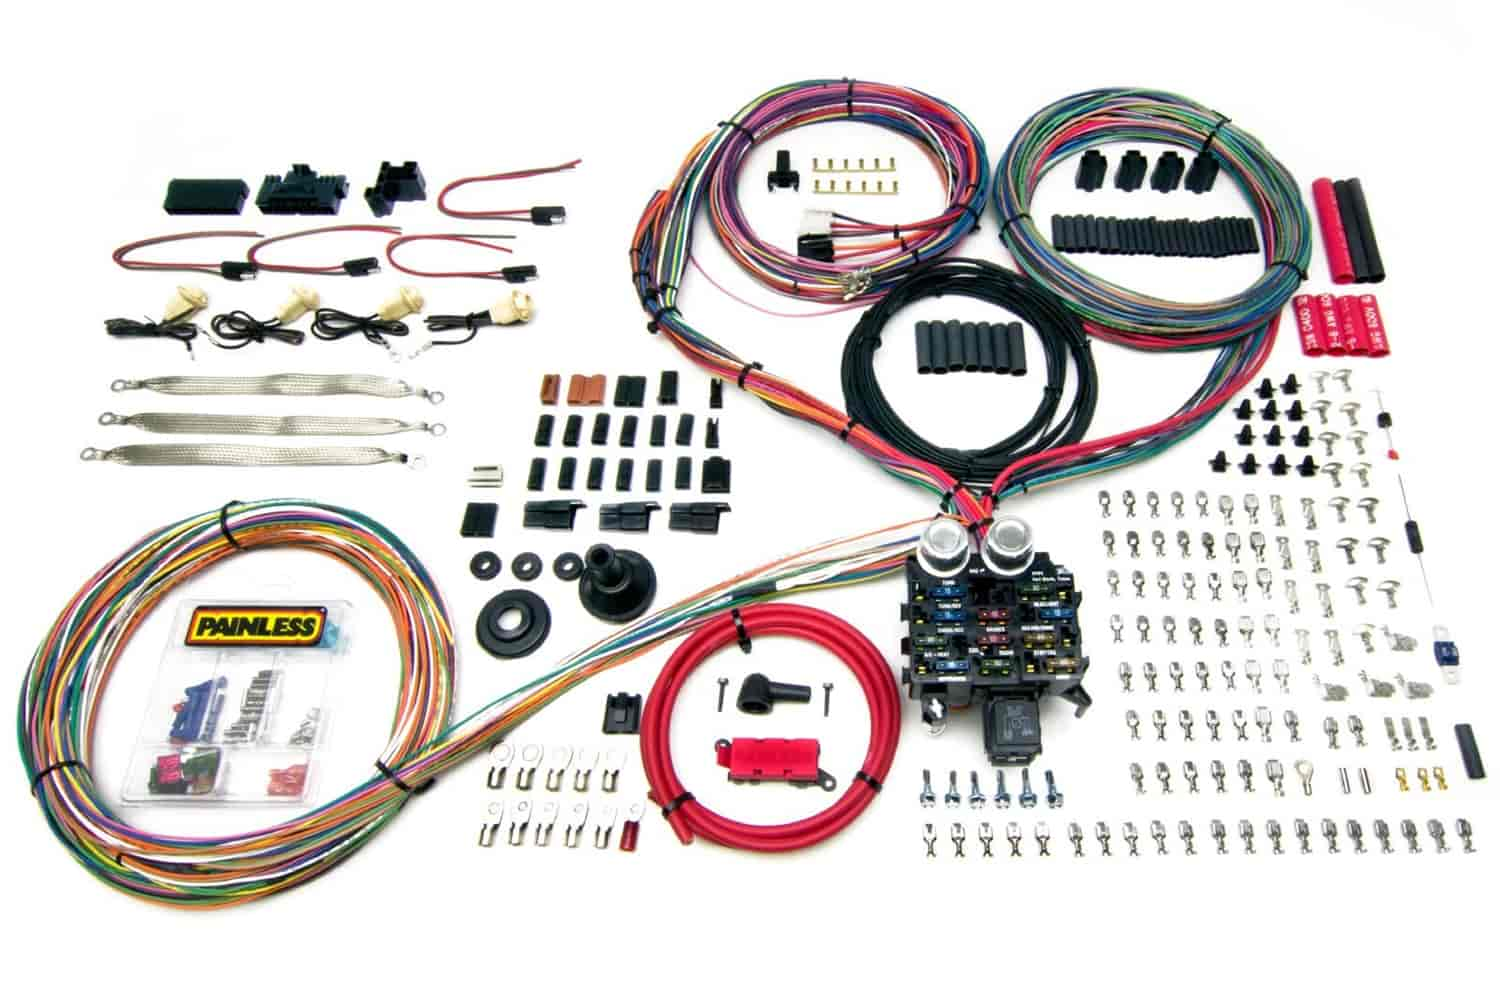 hight resolution of painless performance products 10401 pro series 23 circuit wiring painless wiring harness kit